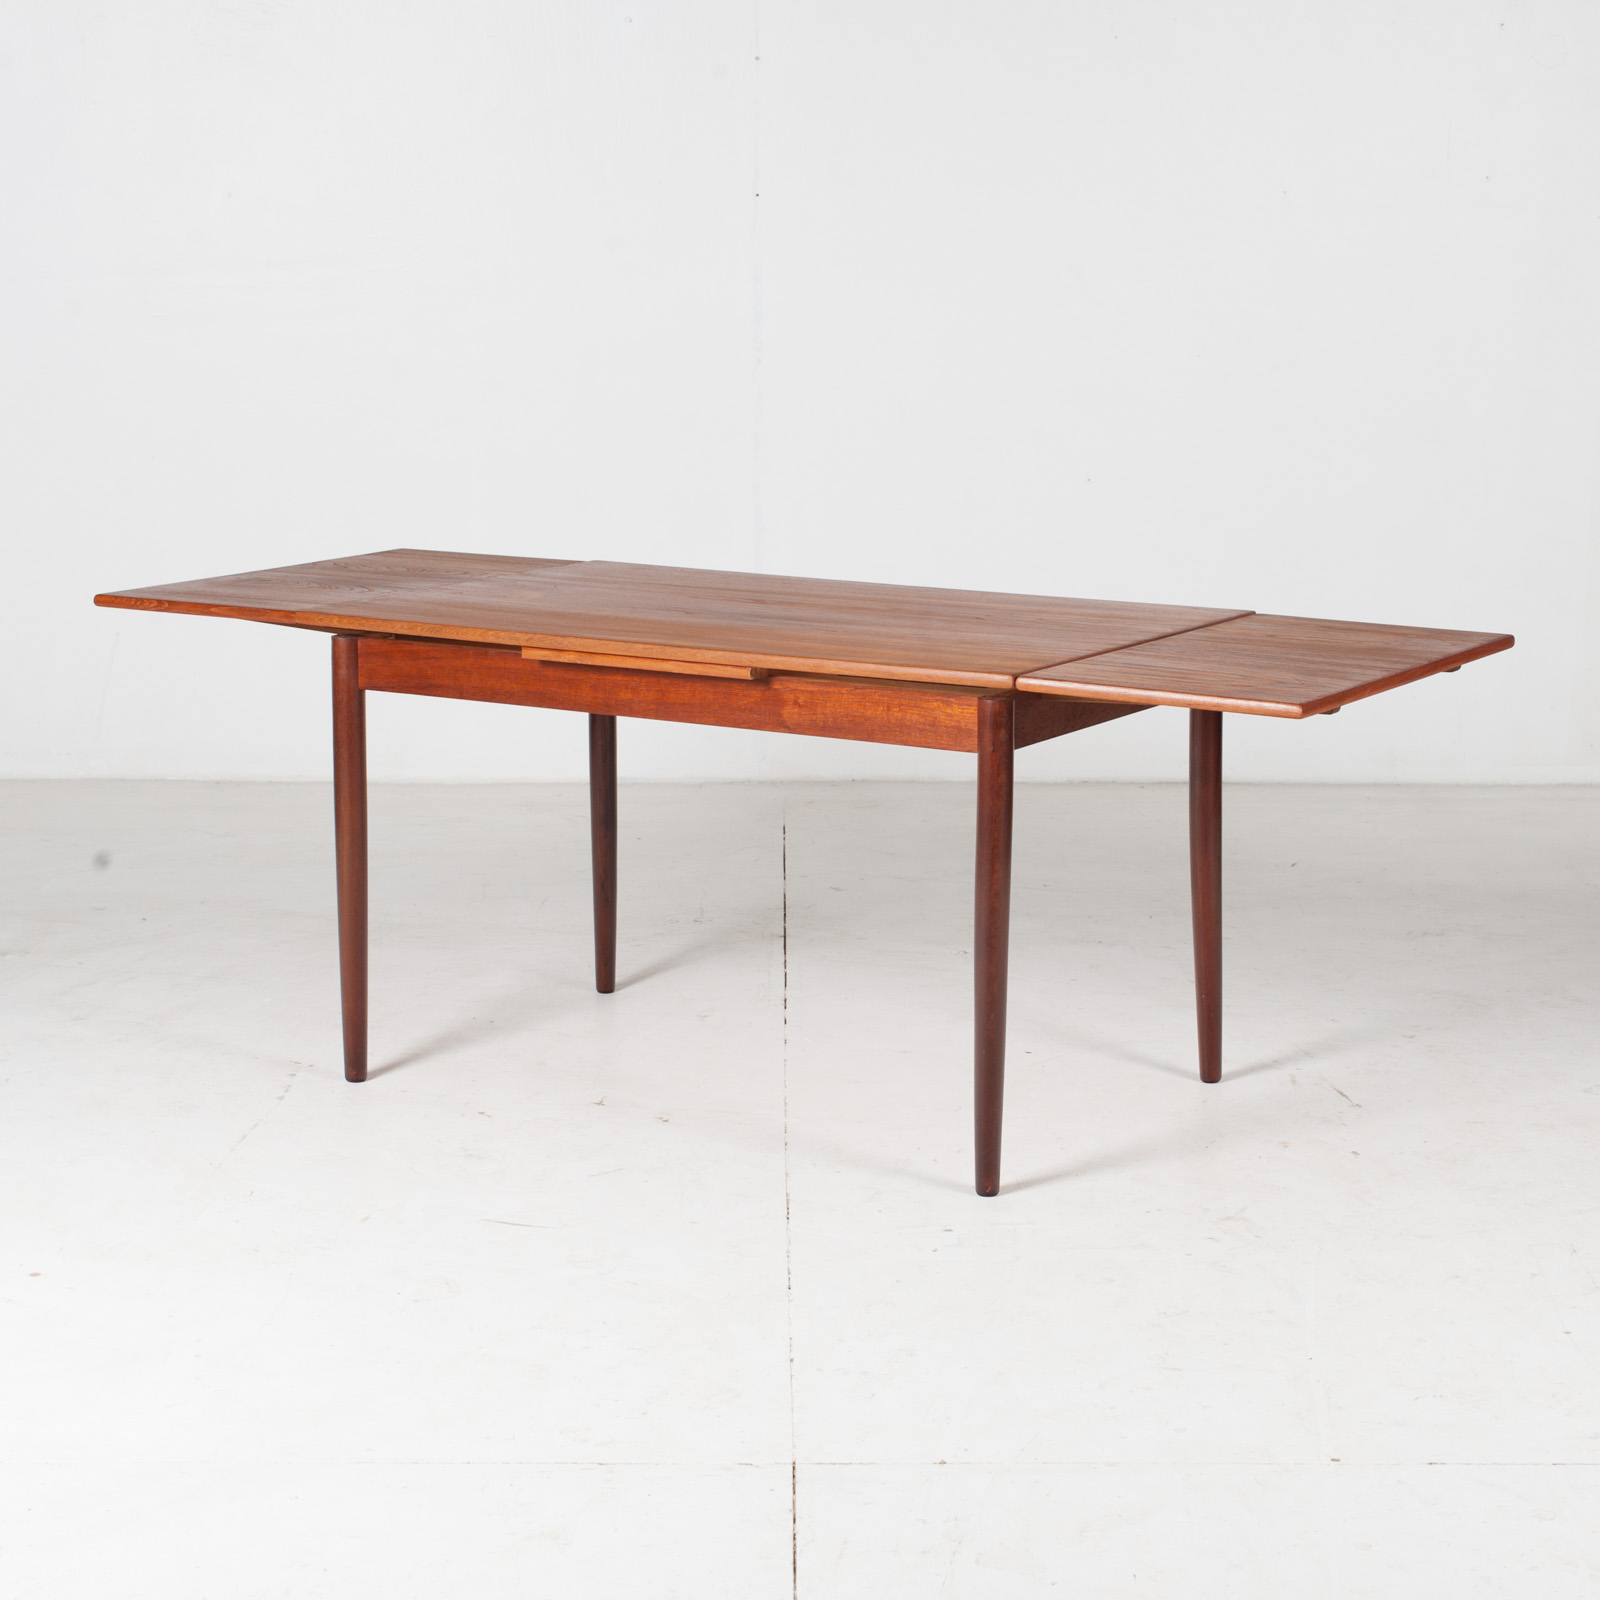 Extendable Rectangular Dining Table In Teak With Solid Edge, 1960s, Denmark7